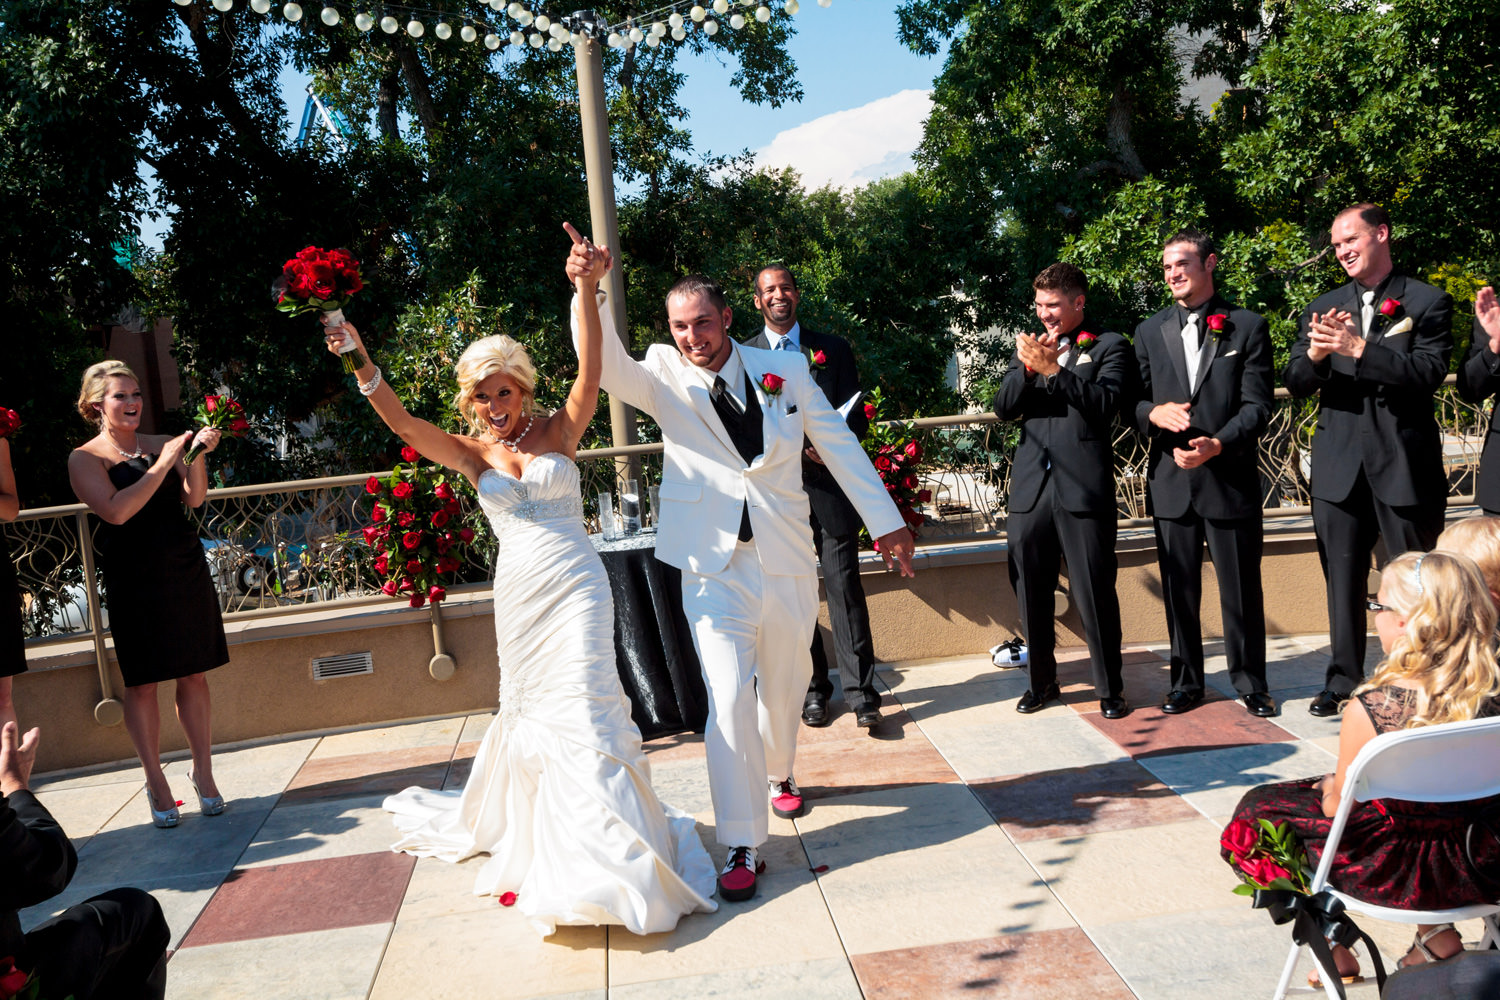 lincoln-center-fort-collins-wedding-tomKphoto-110.jpg